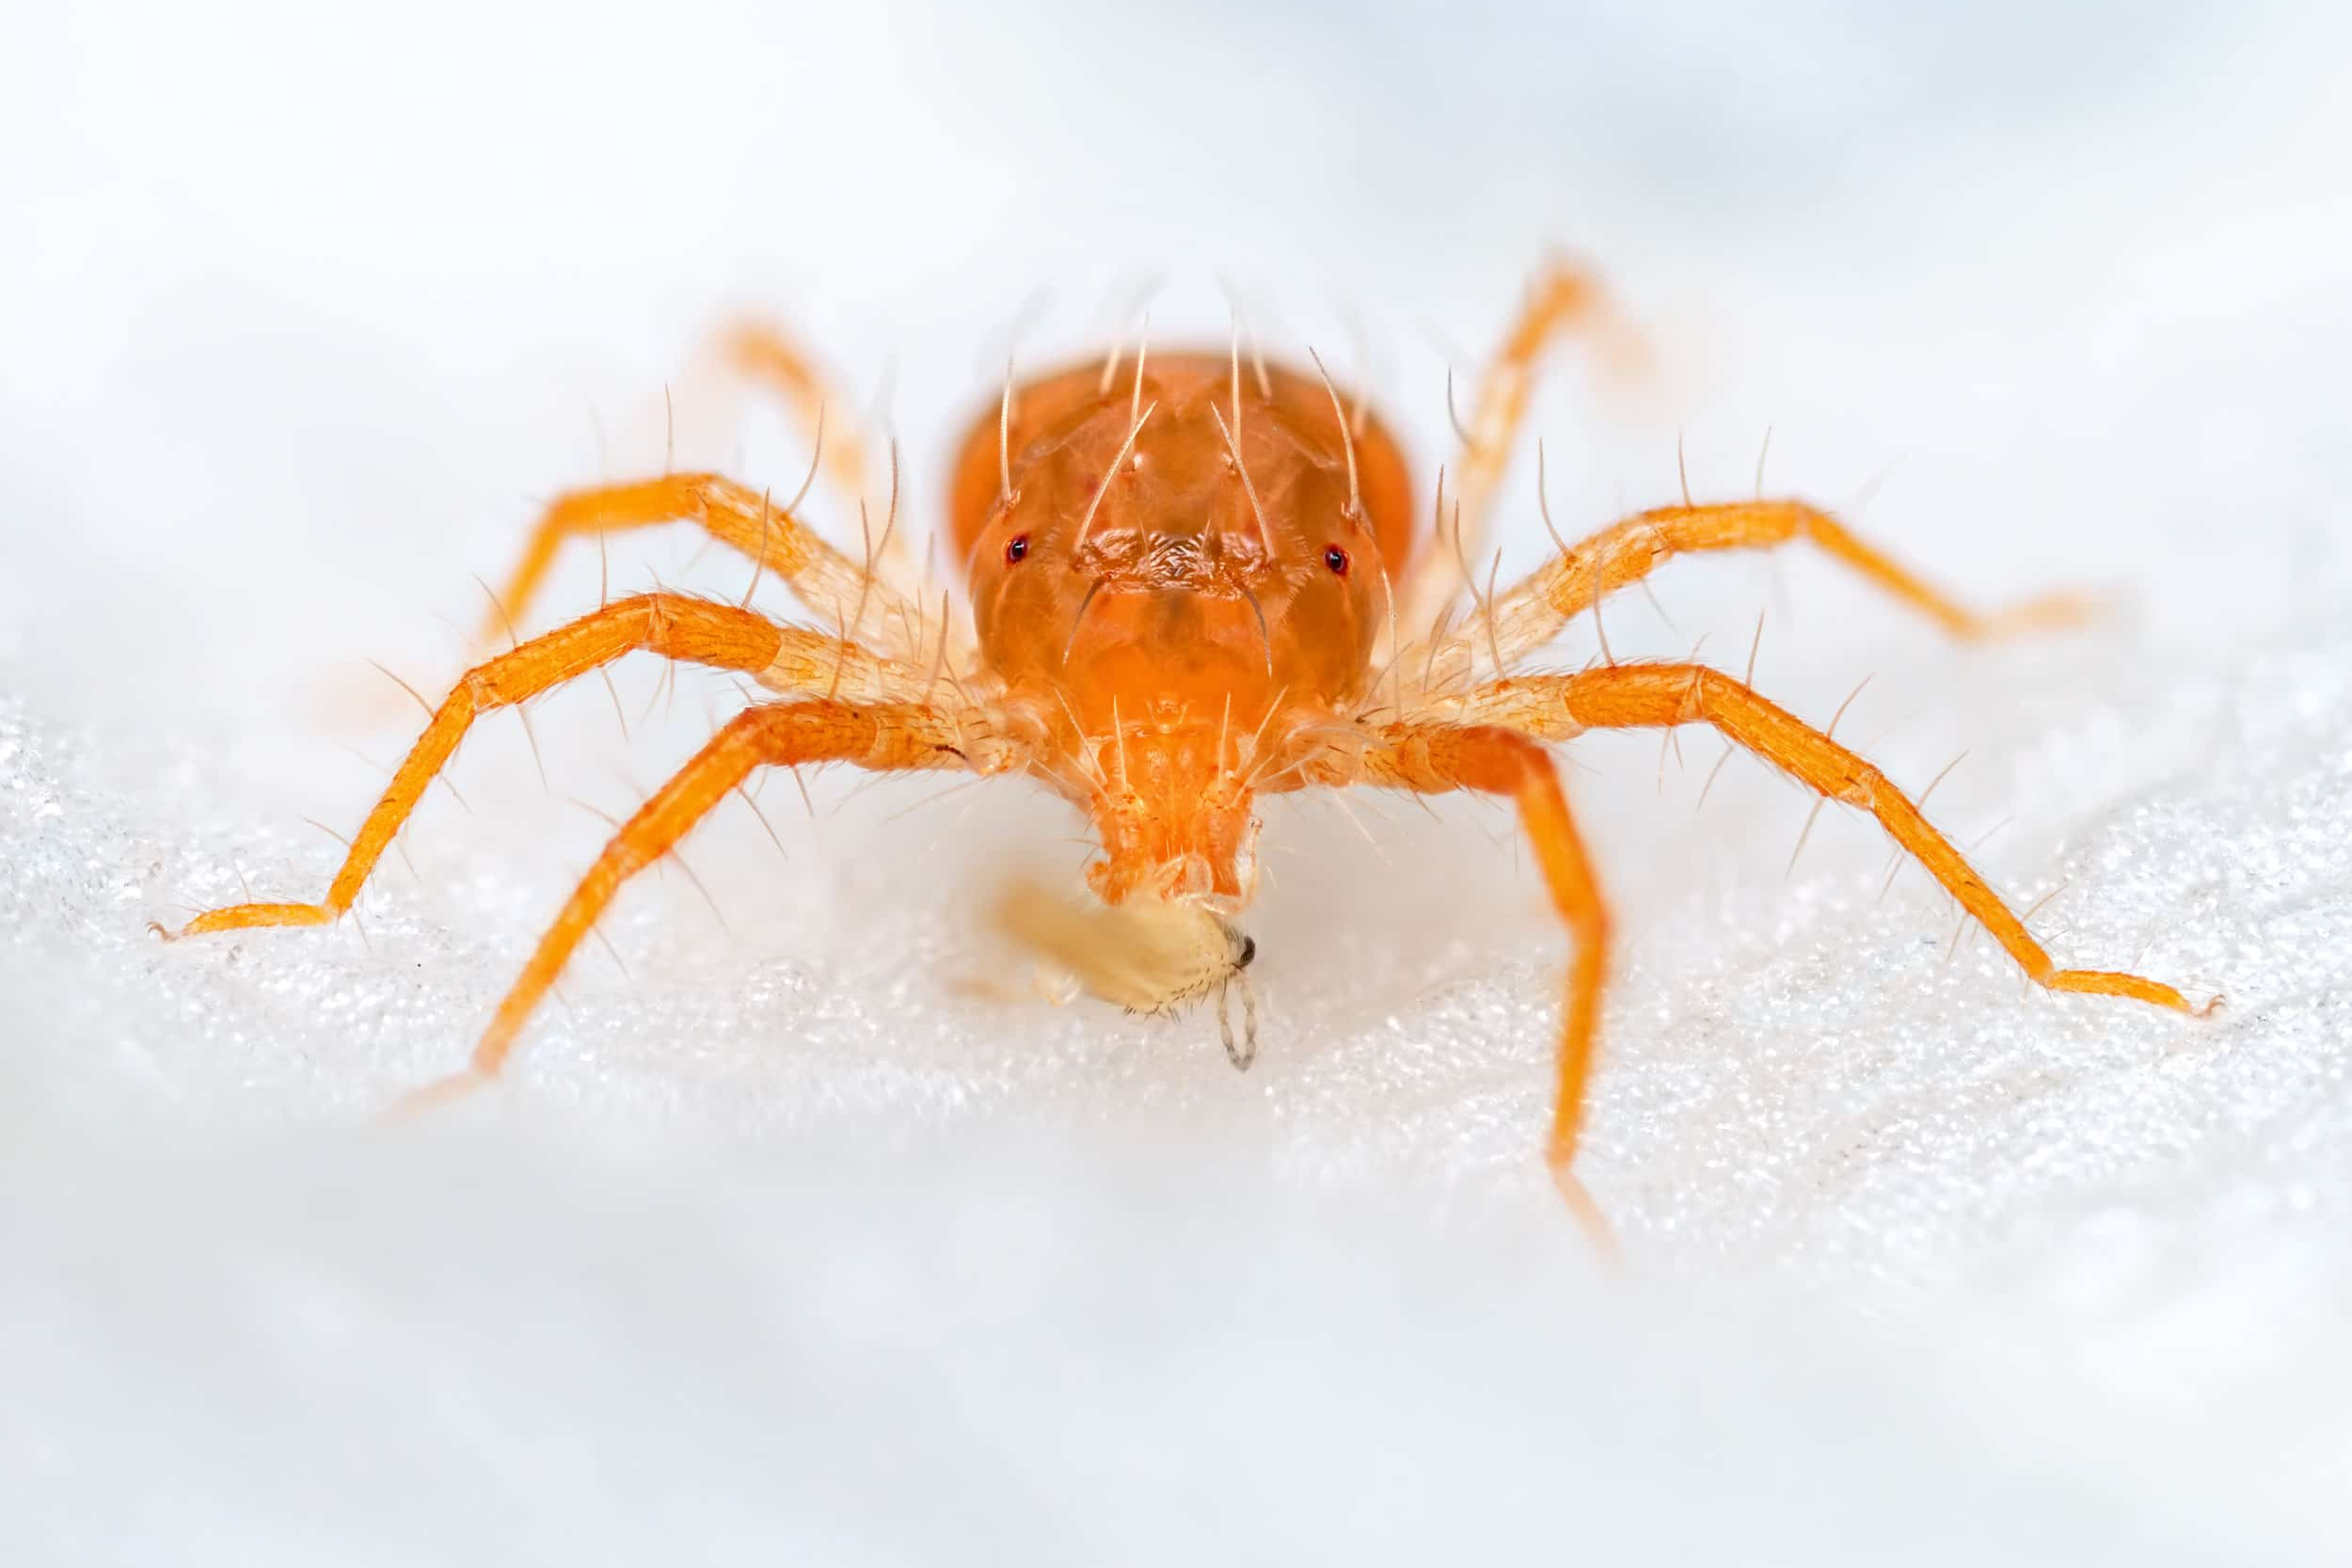 Mite photographed in Lucerne, Switzerland